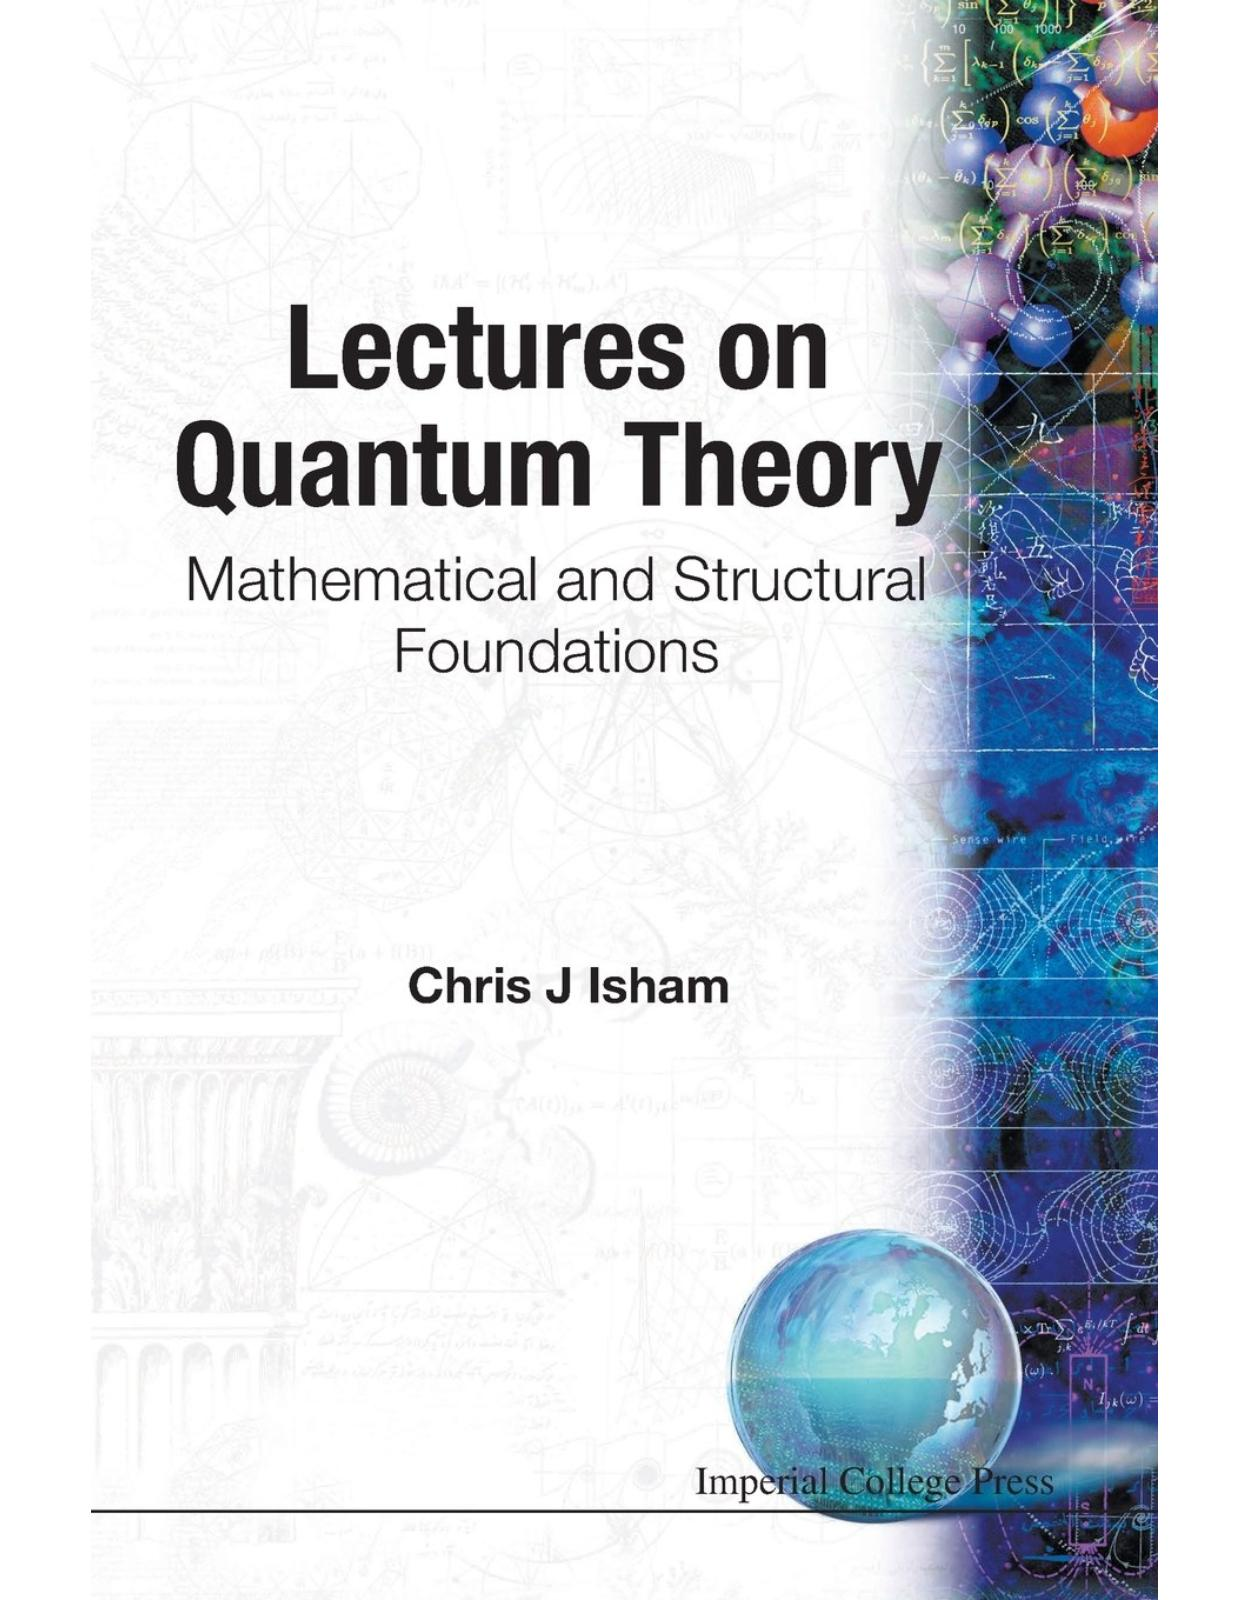 Lectures on Quantum Theory. Mathematical and Structural Foundations